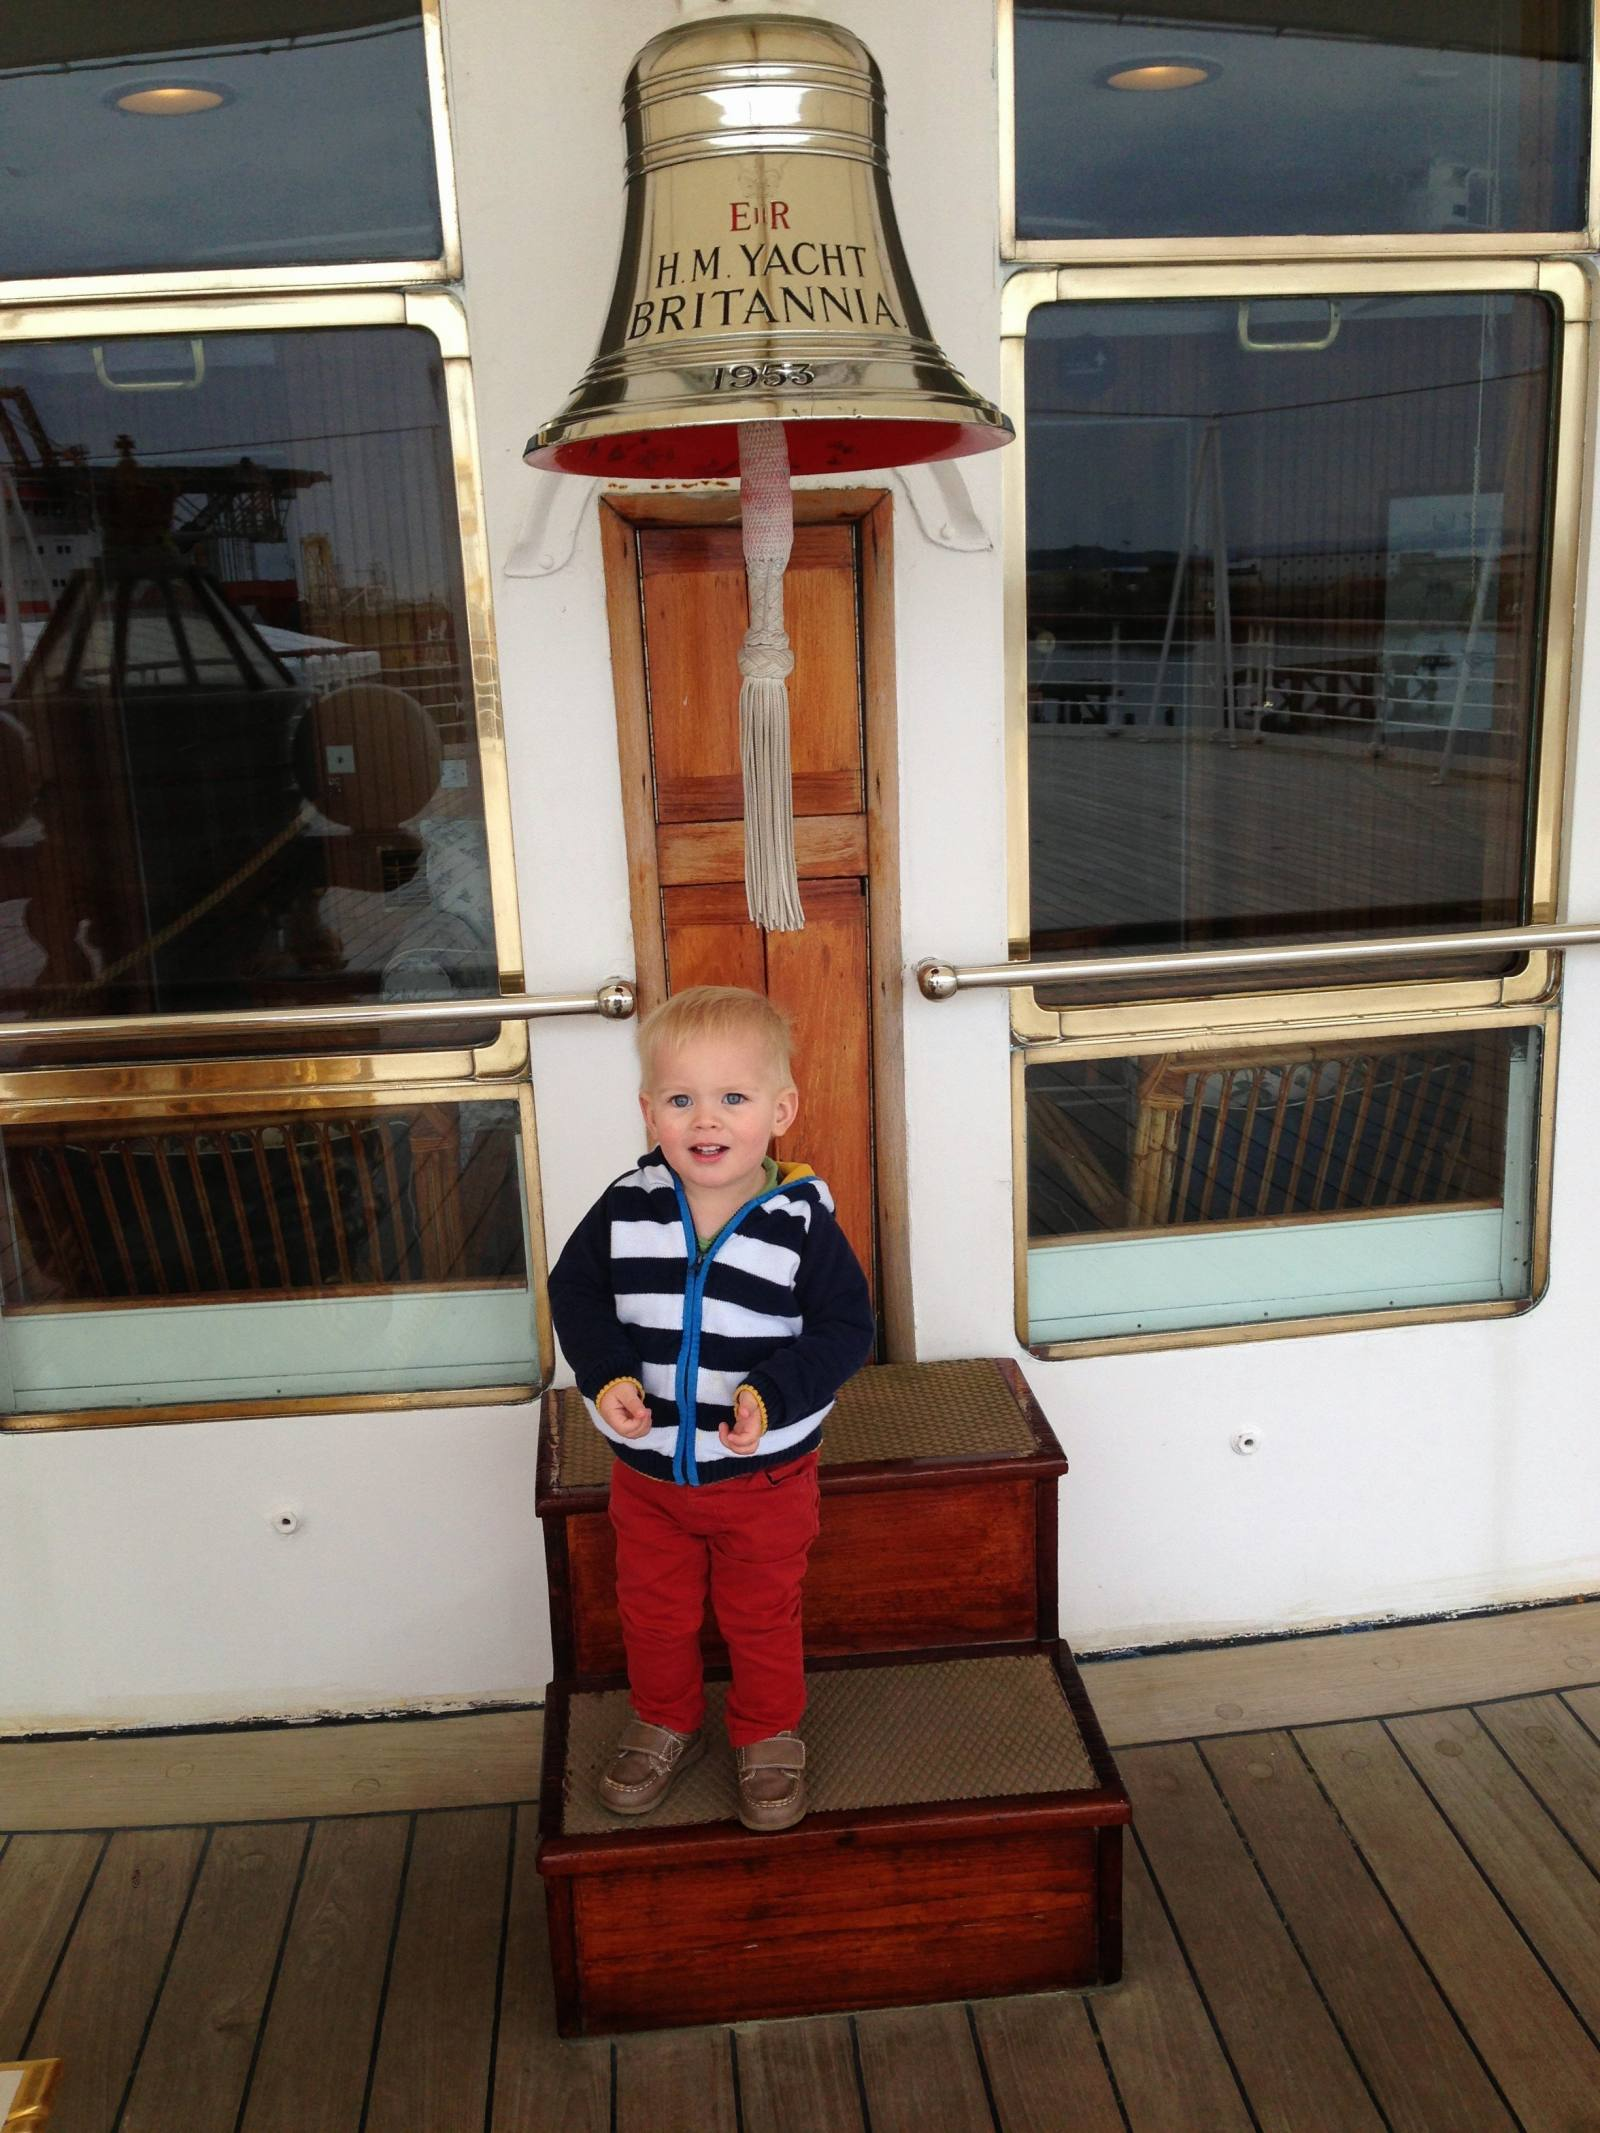 Royal yacht britannia in edinburgh is a great place for a day out with a toddler